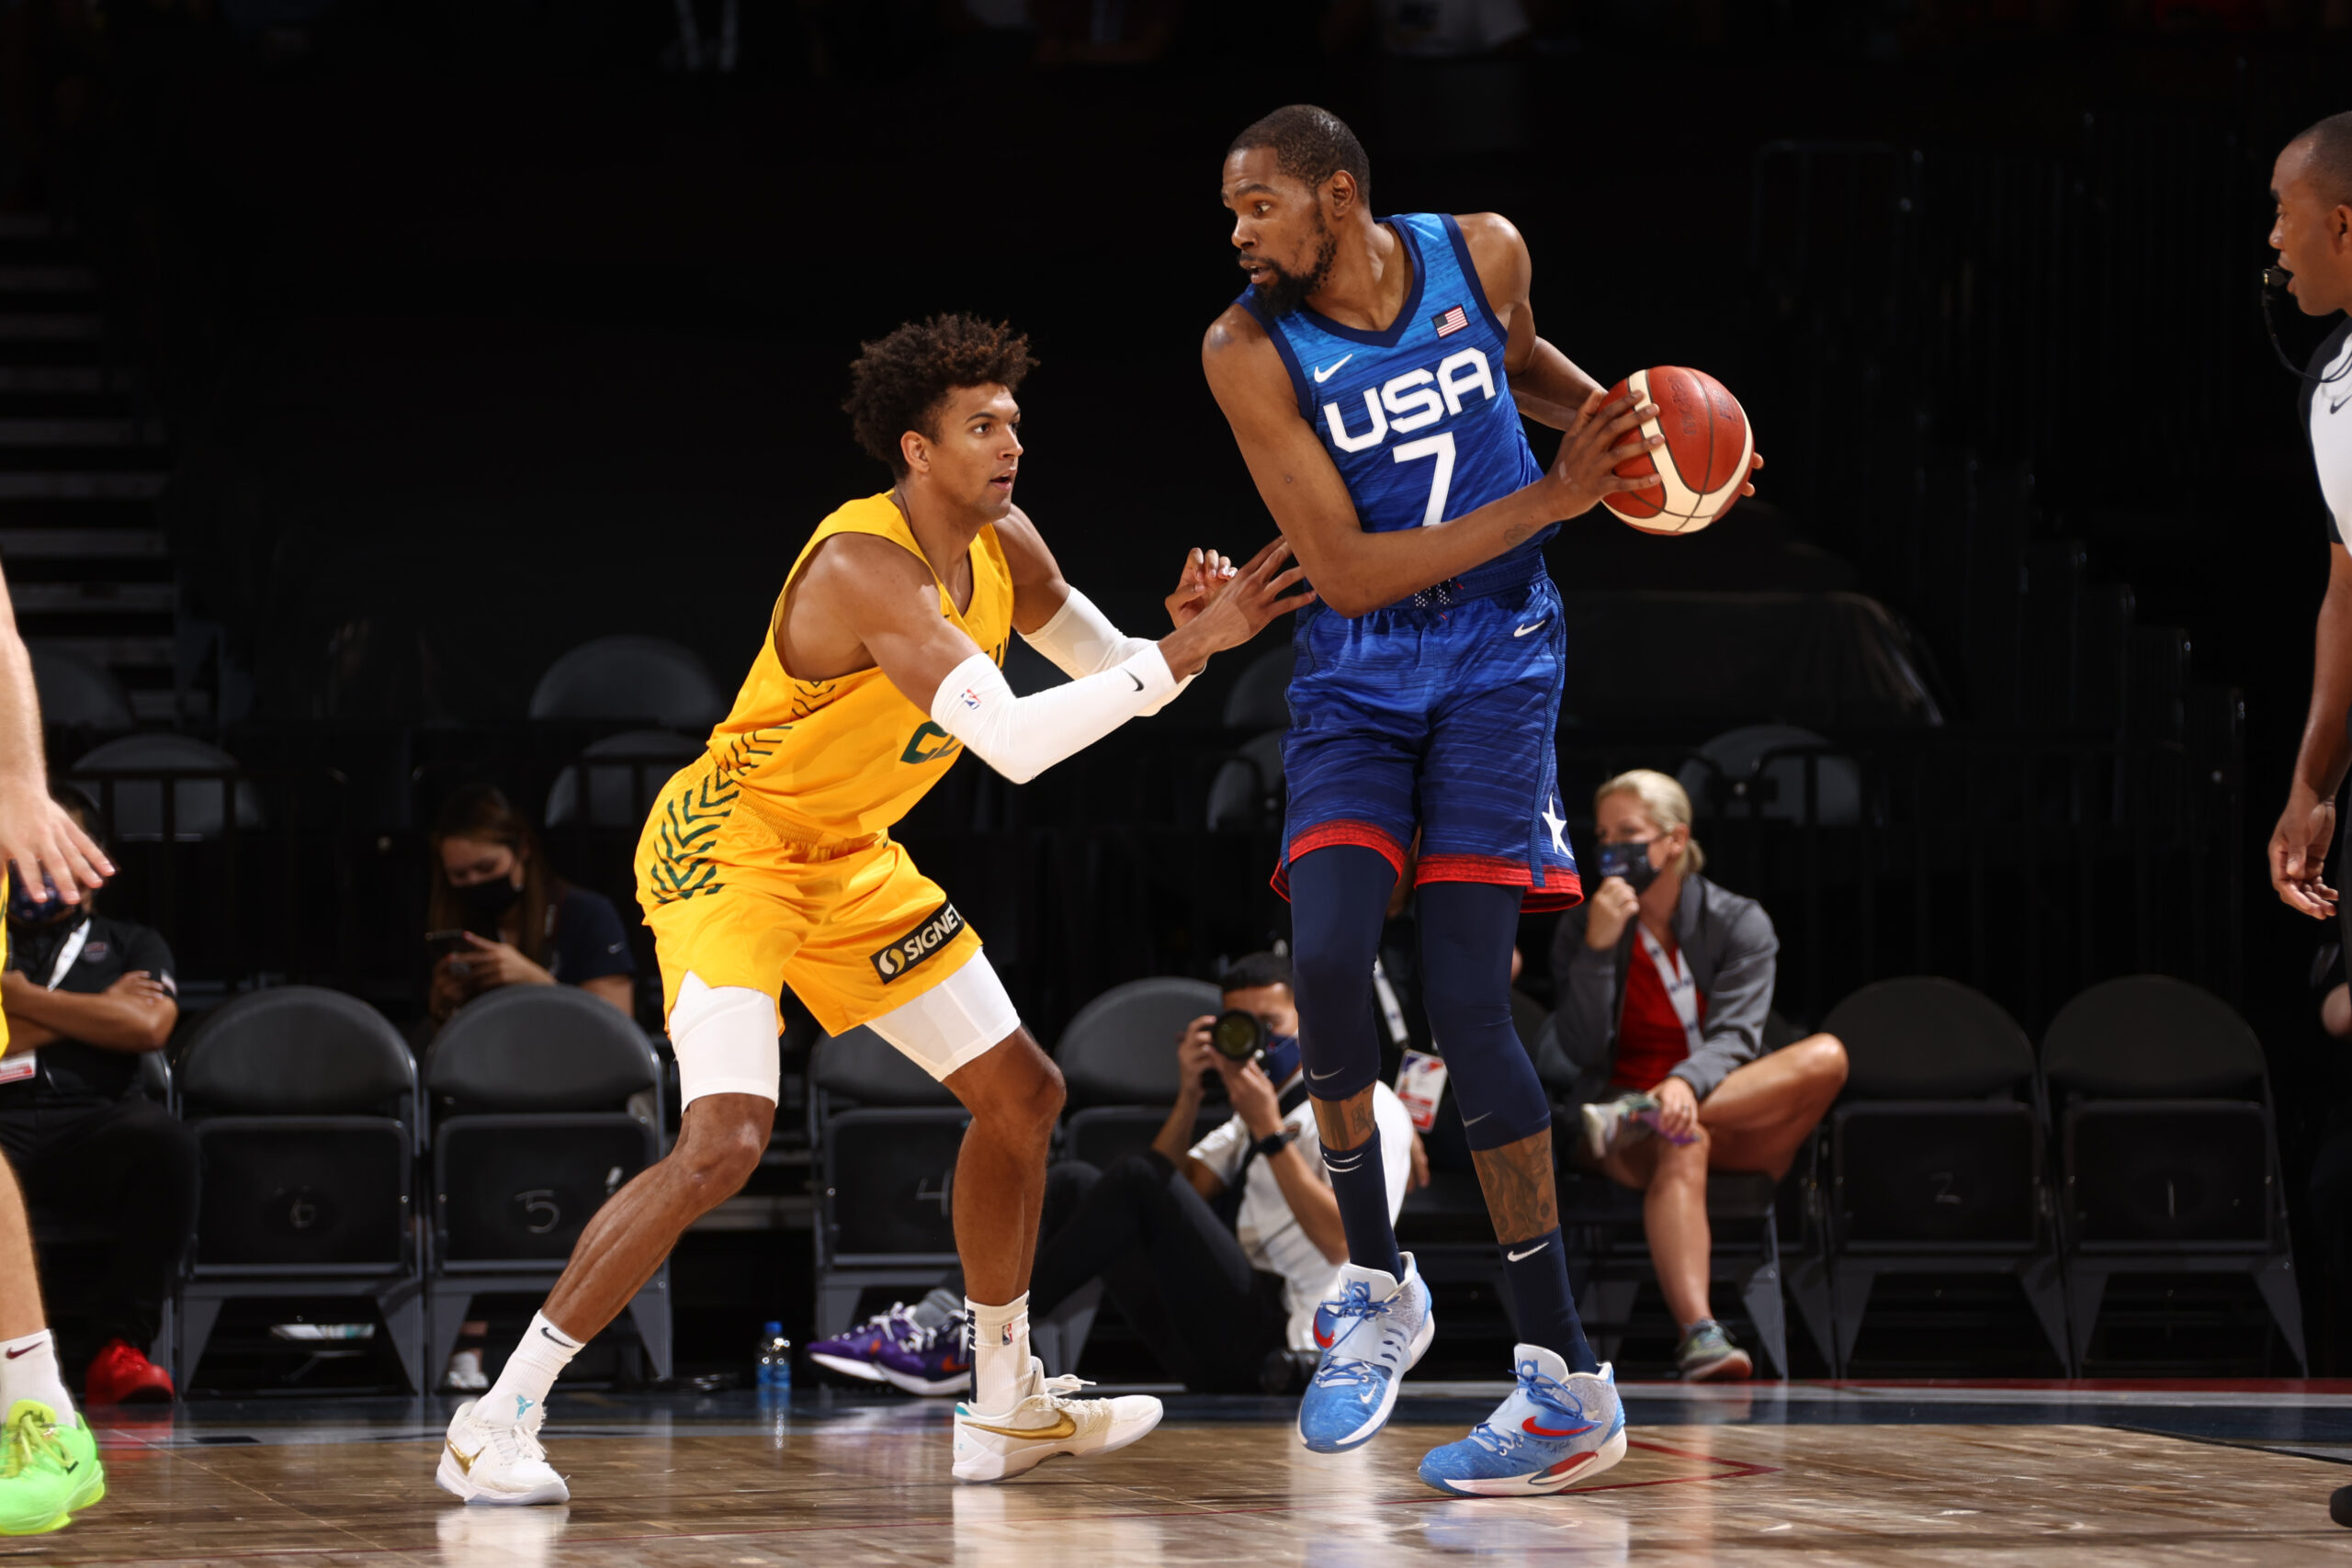 Olympic Semifinals Preview: Matchups, NBA players to watch & more